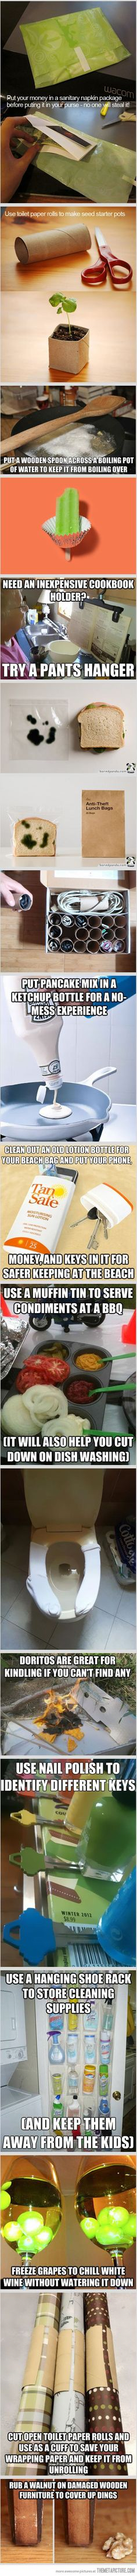 Some different life hacks.